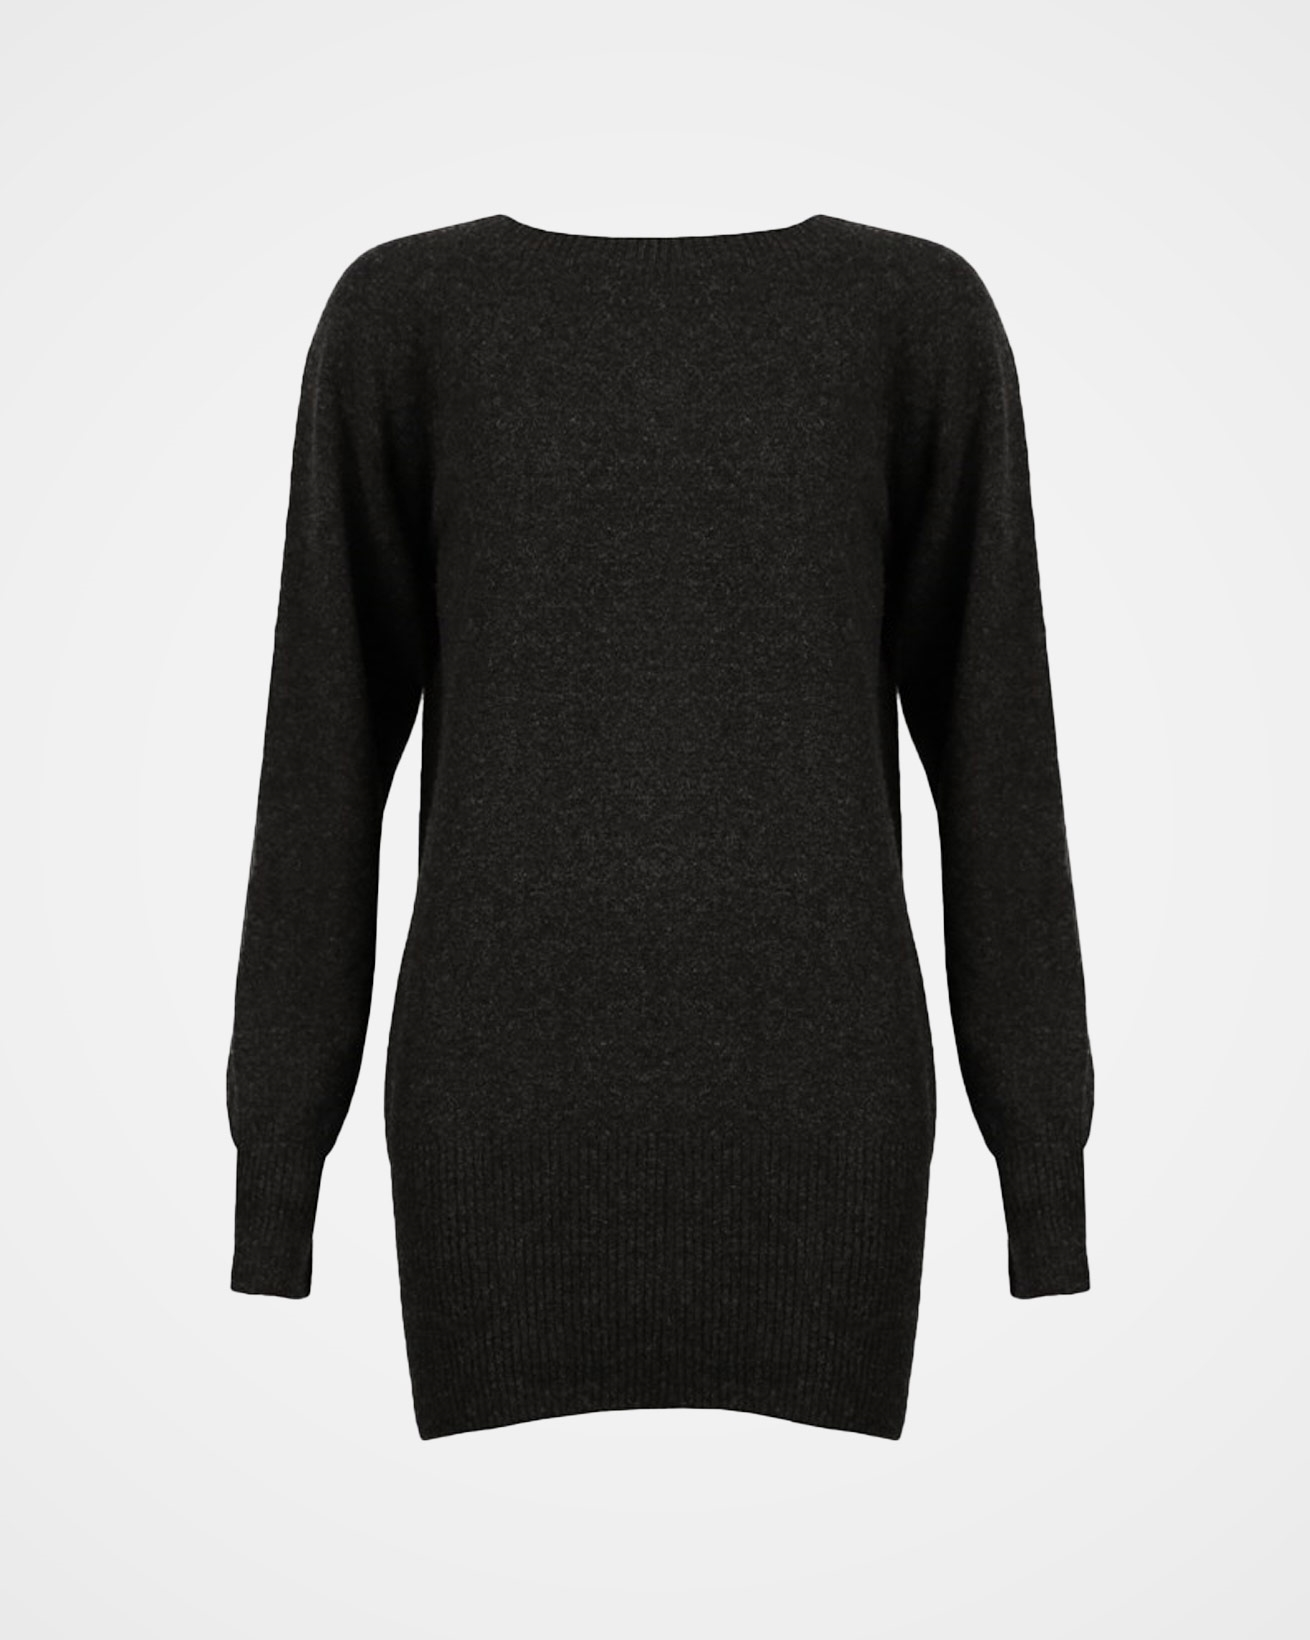 6344_supersoft-slouch-jumper_charcoal_front.jpg